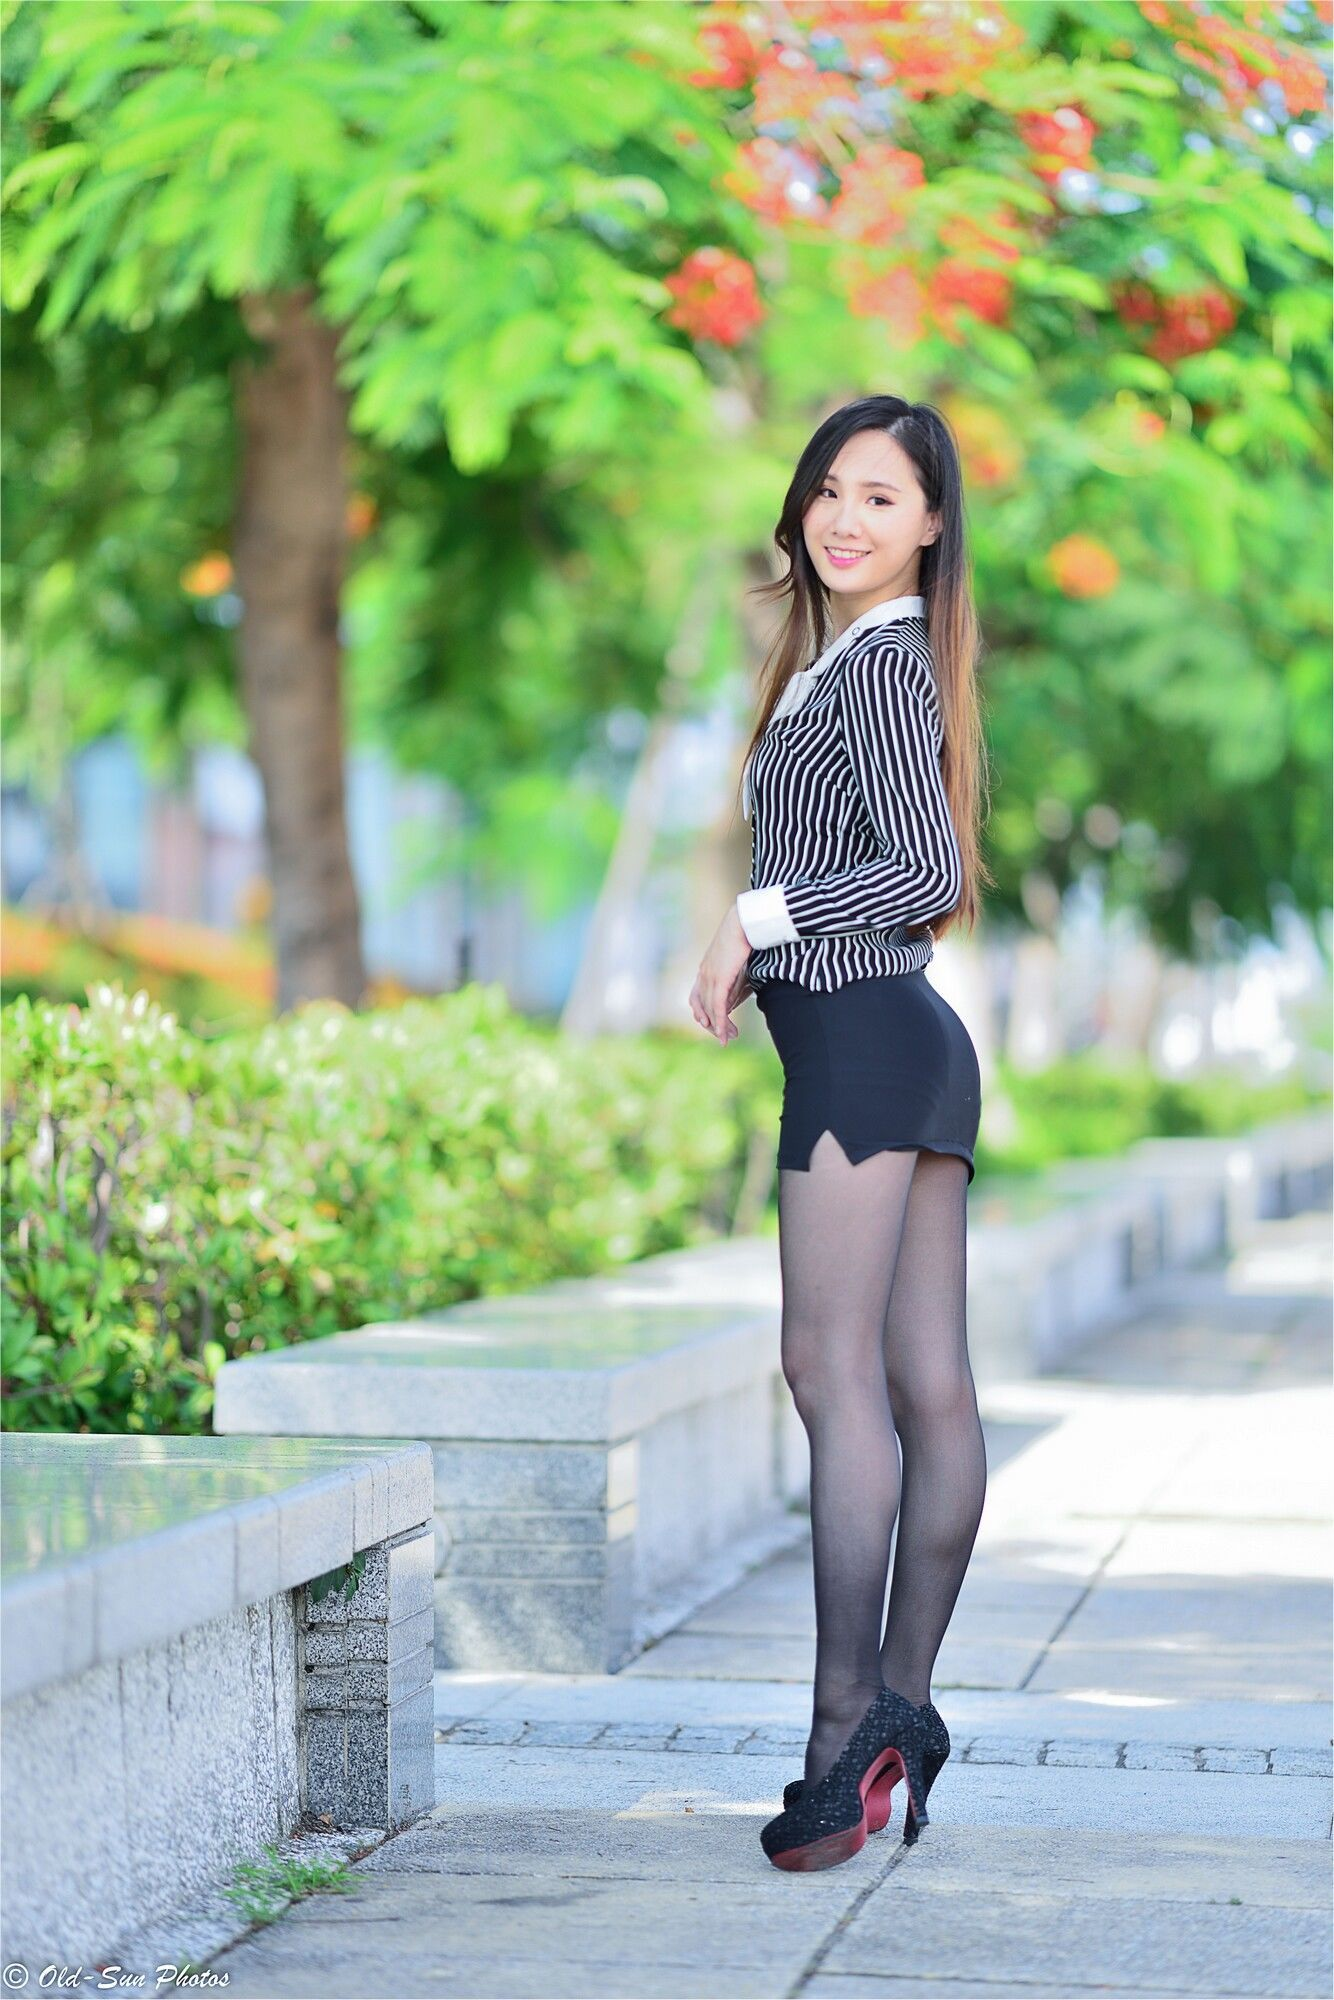 Short skirts and stockings